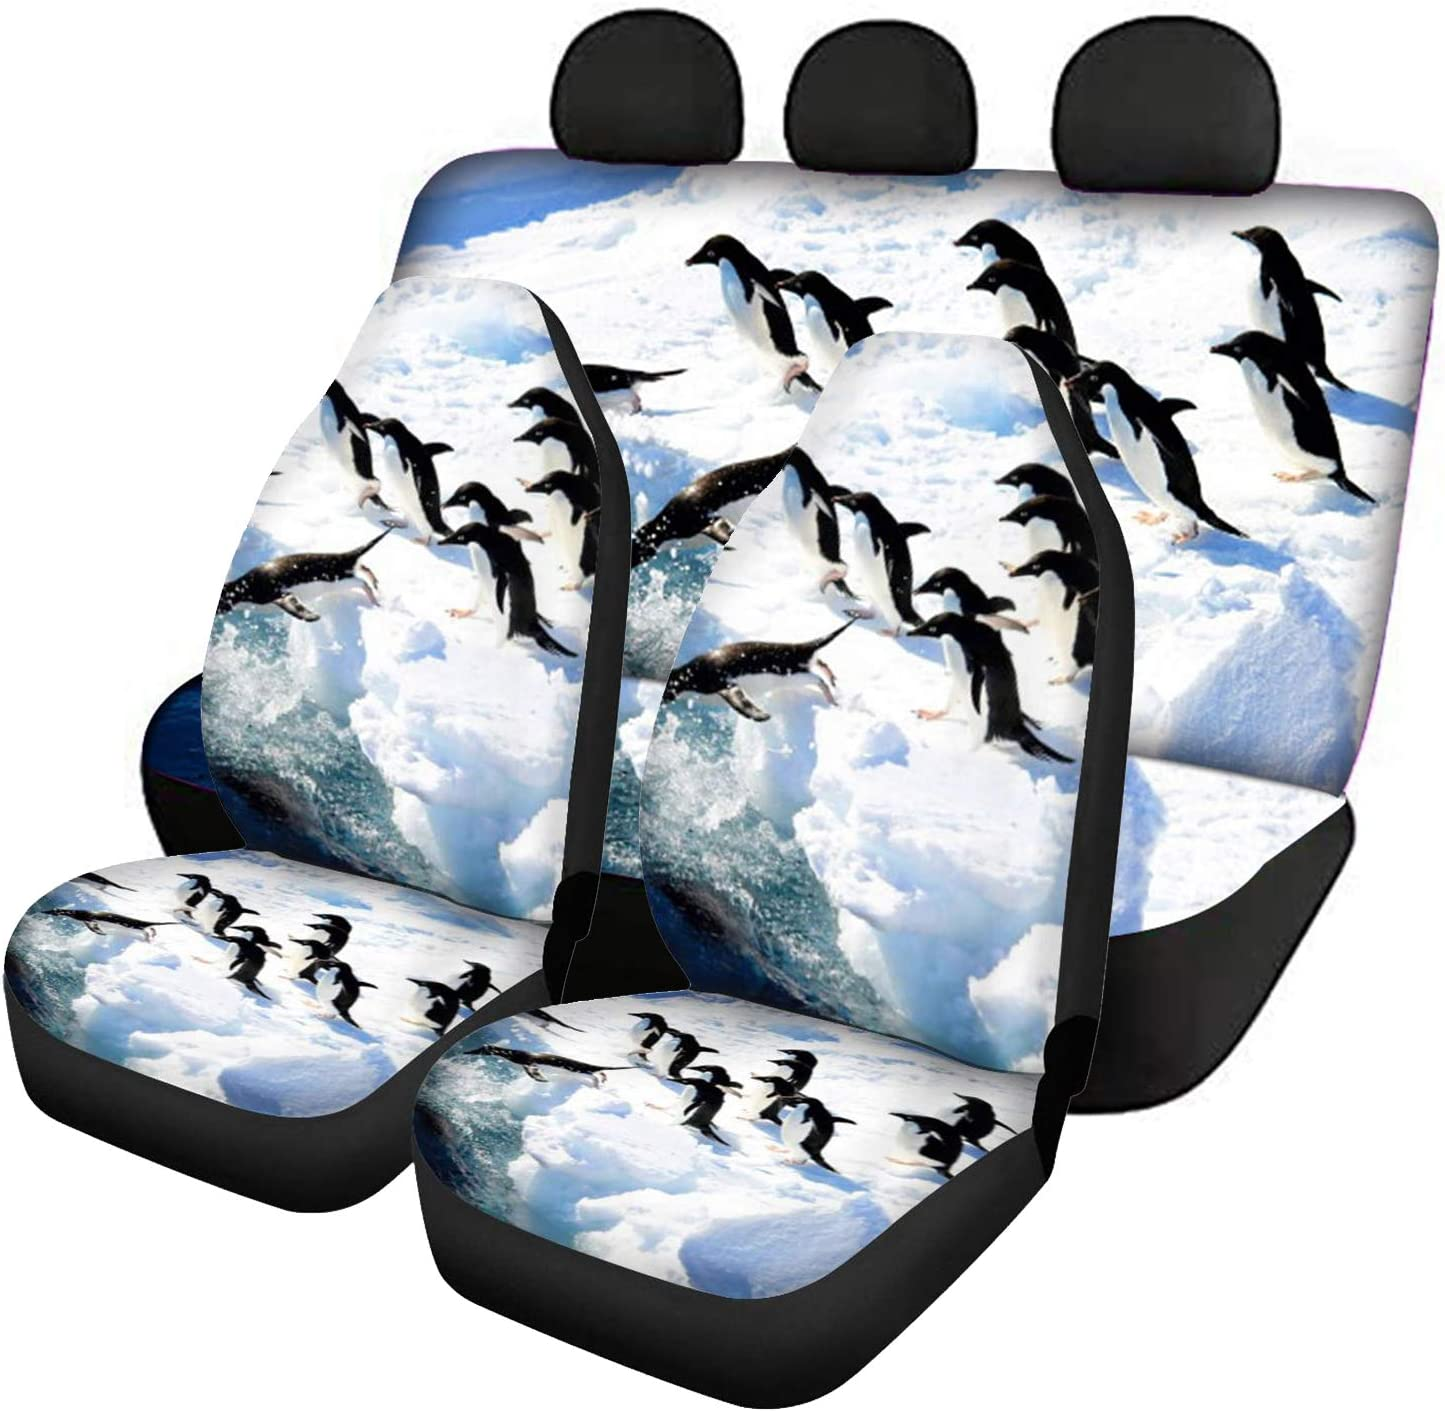 Xhuibop Penguin Ranking Fees free!! TOP15 Front Car Seat Covers Ba and Rear Backrest Cover